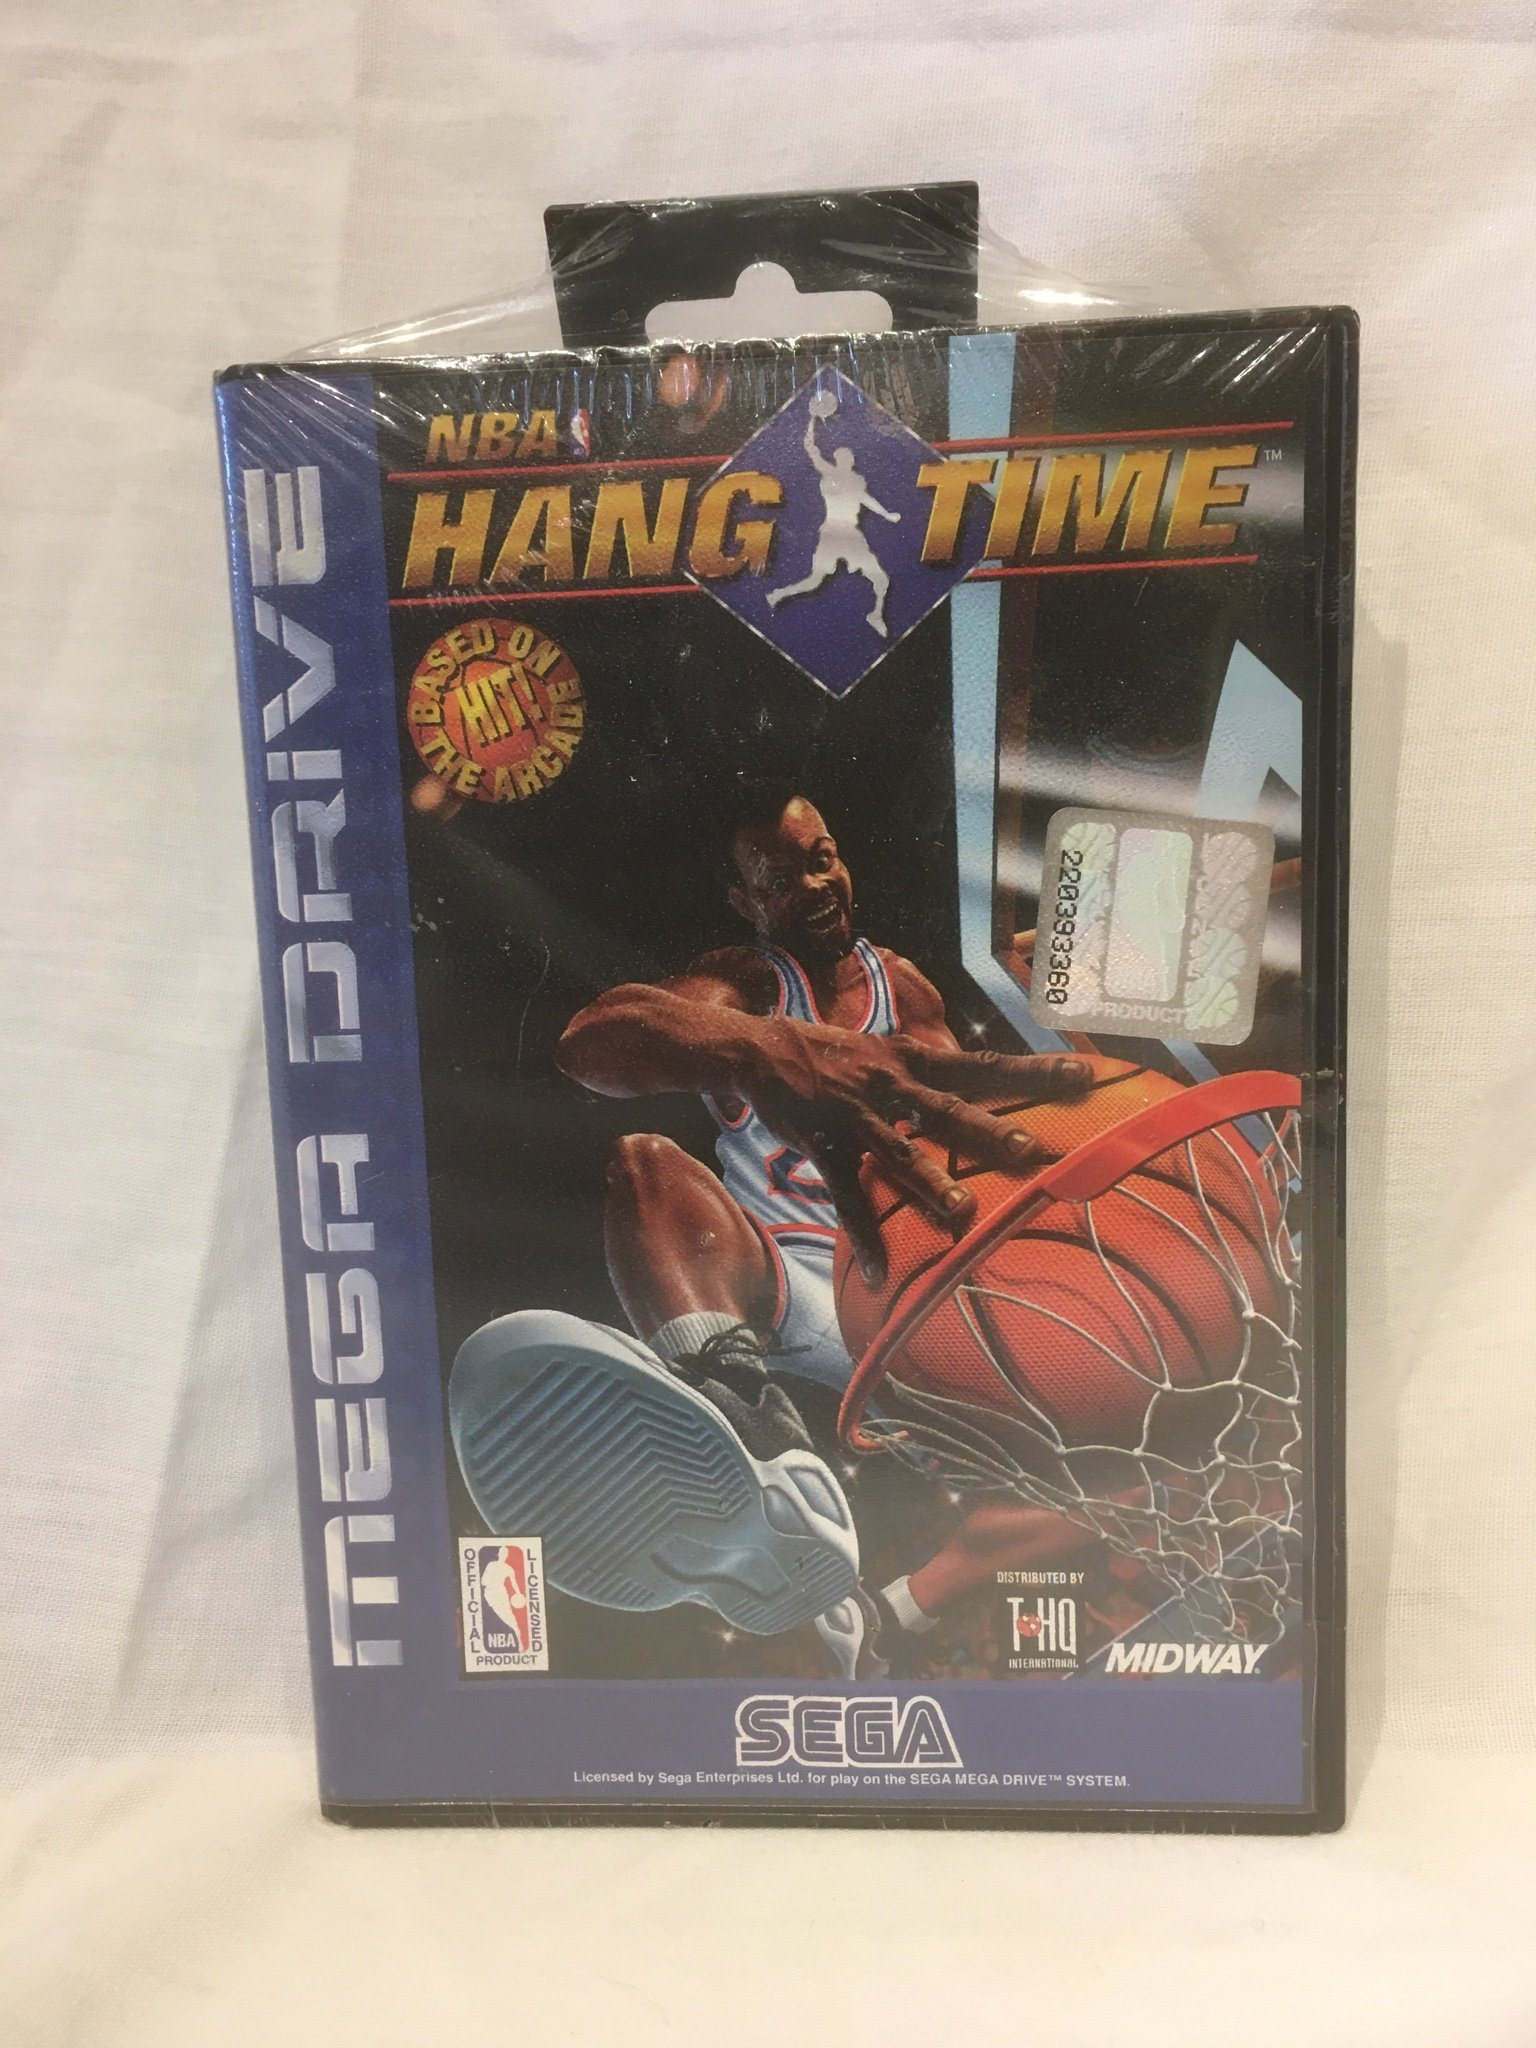 Sega Mega Drive, NBA Hang Time